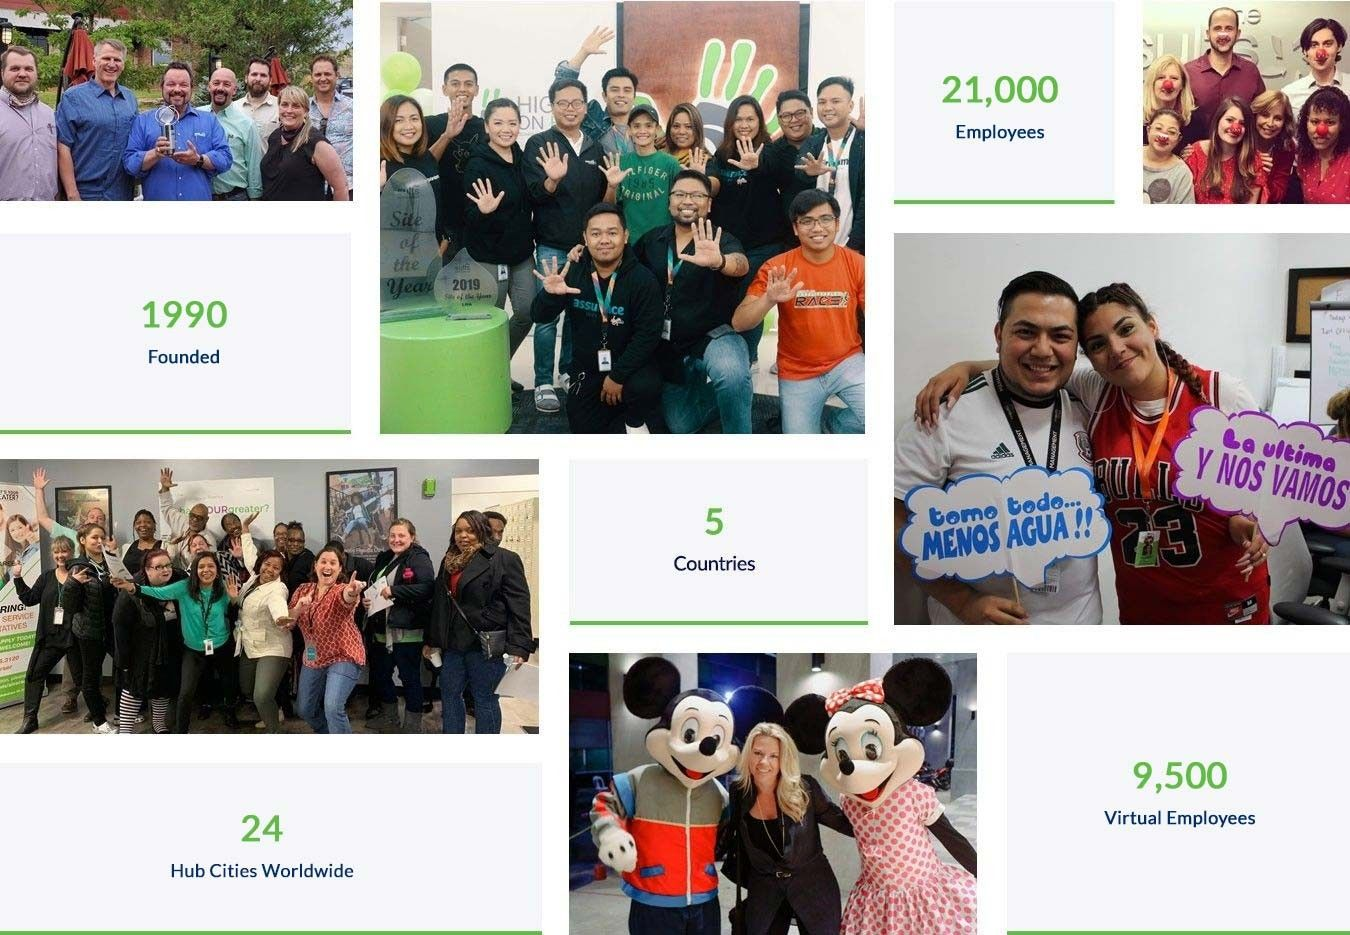 The Results Companies was founded in 1990, is present in 5 countries, has 30 engagement centers, and consists of 20,000 employees working in our different branches as well as 7,000 employees working remotely.